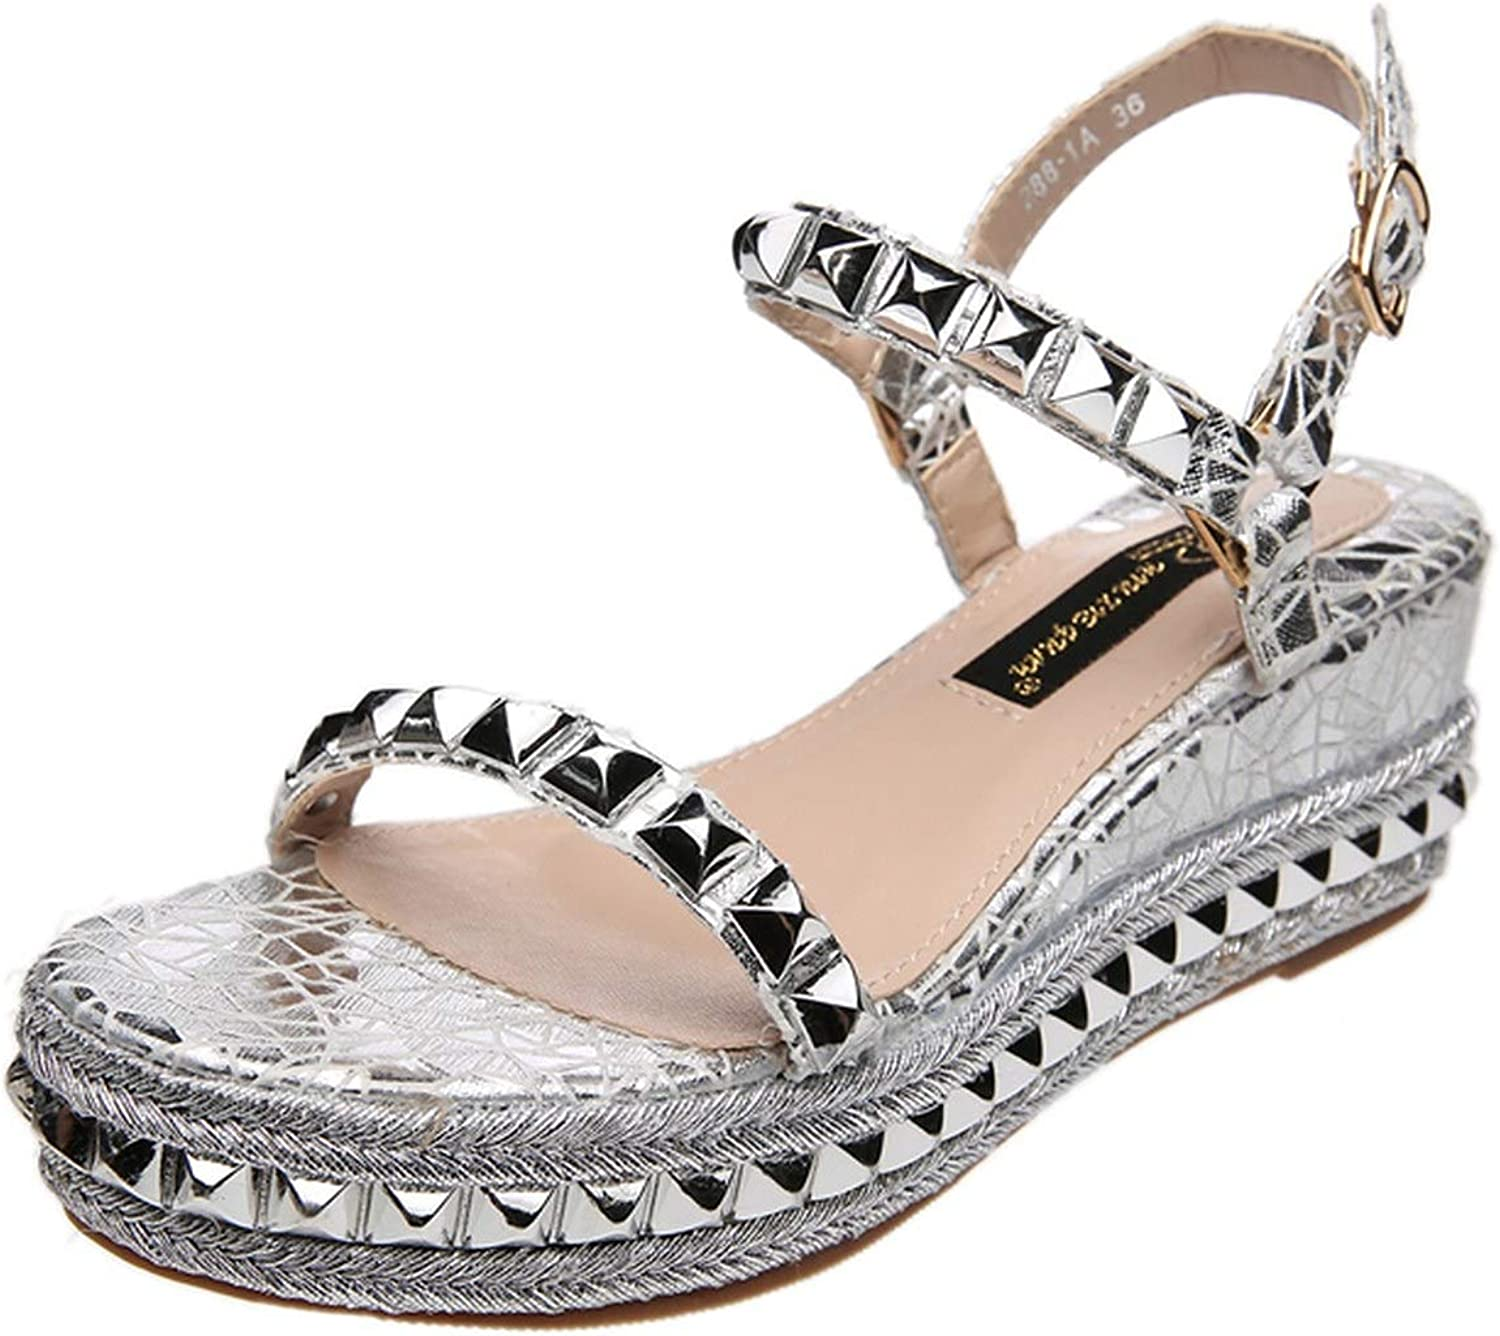 Sandals Summer Designer Casual gold Silver High Heels Wedges Studded Sandals Glitter Open Toe Heels Rivets Sandals